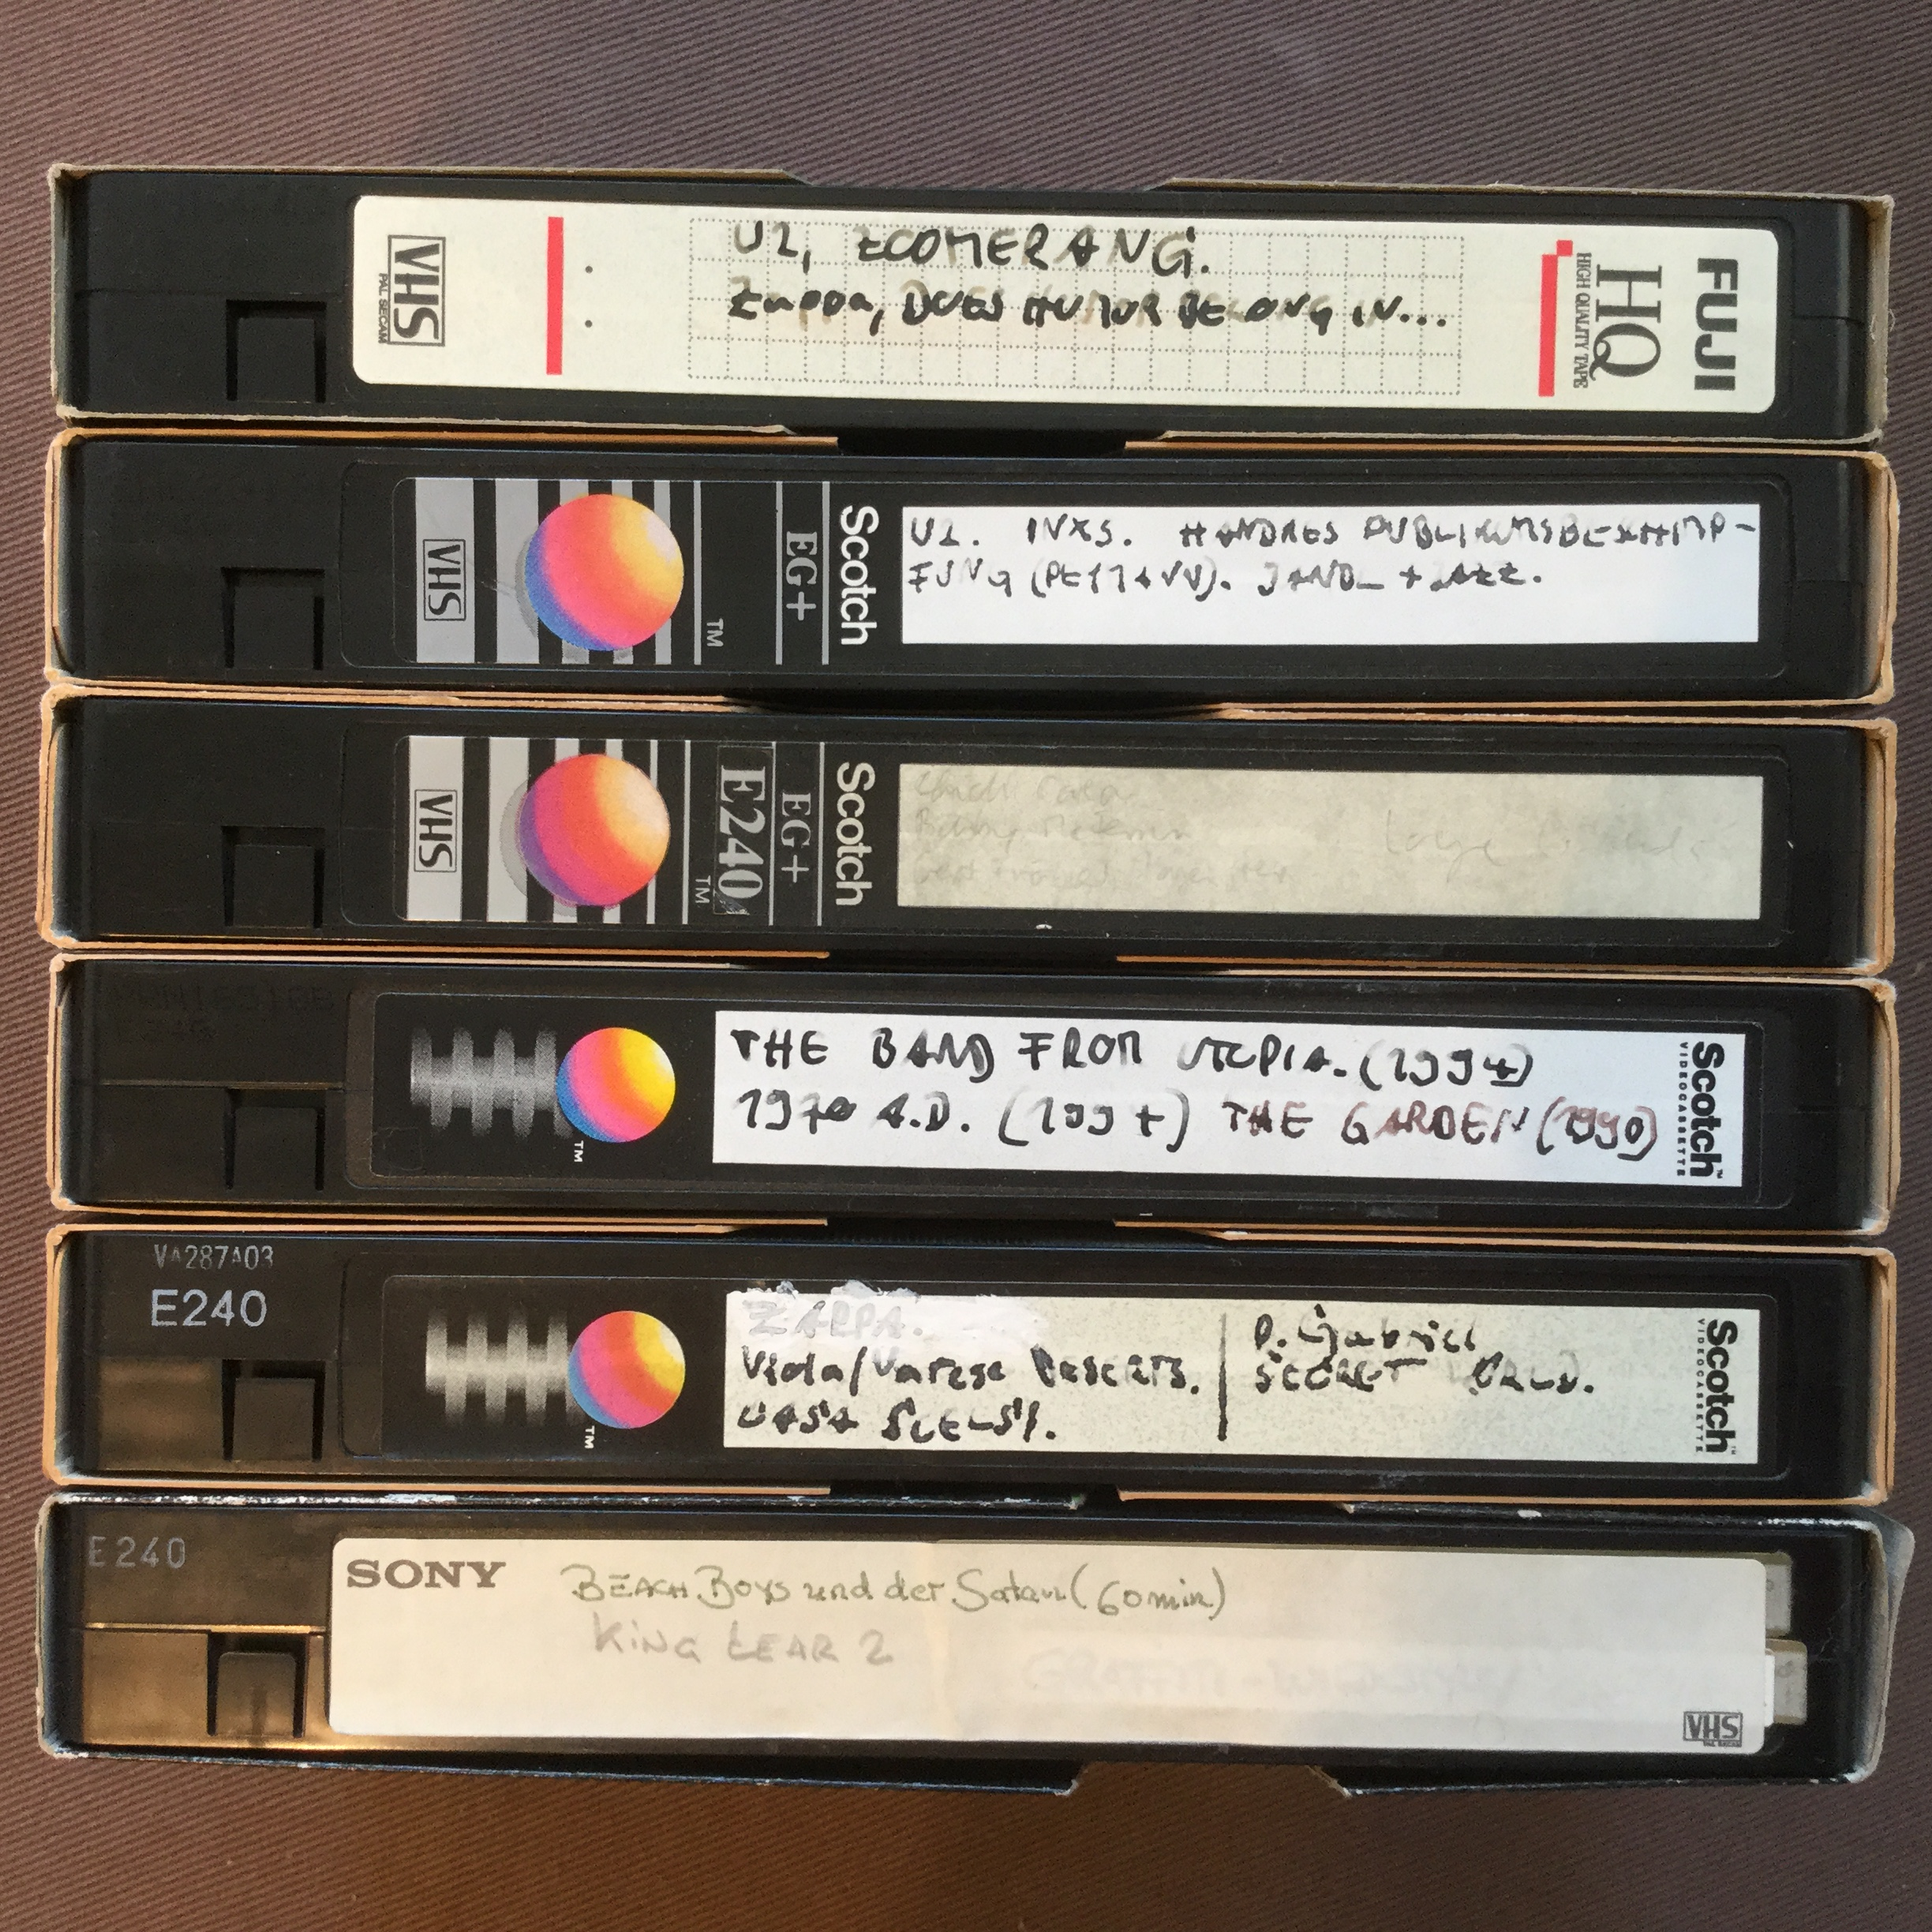 My Videotapes 3